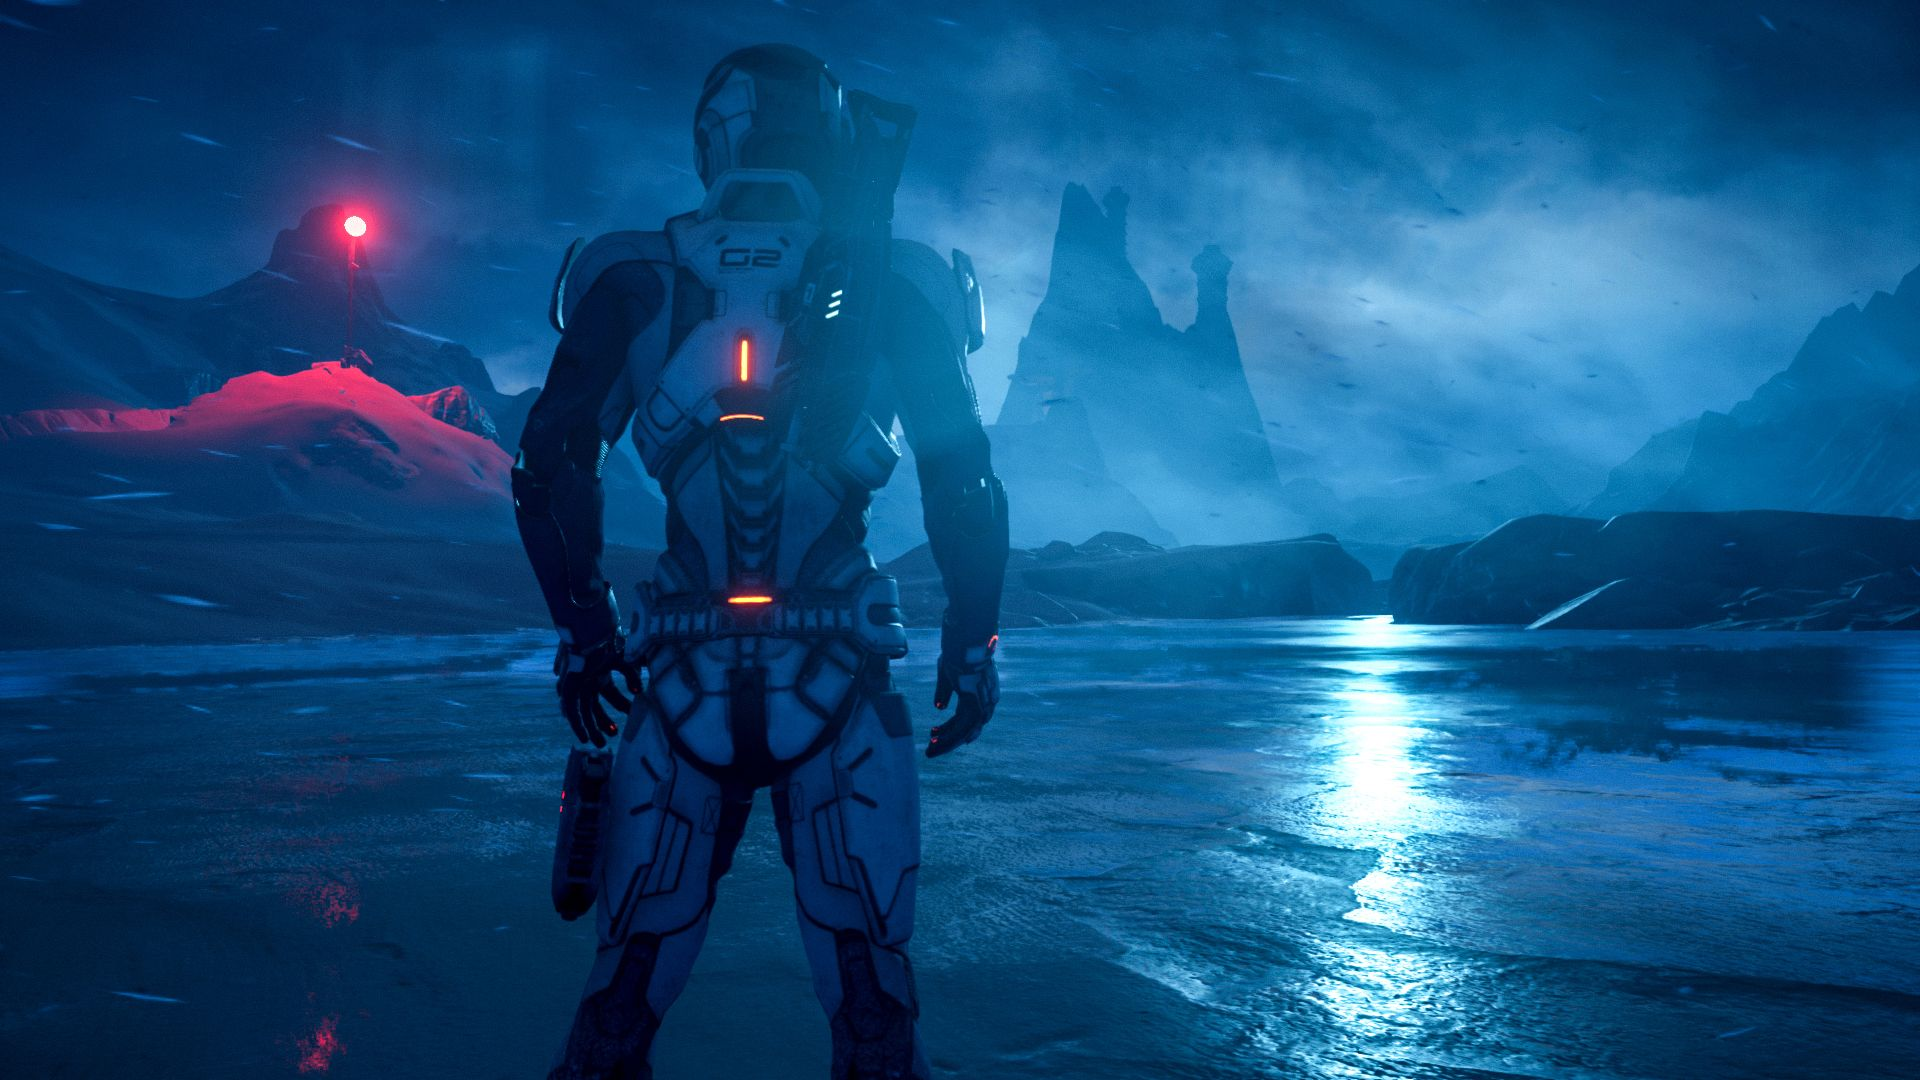 Mass-Effect-Andromeda-Gameplay.jpg - Mass Effect: Andromeda